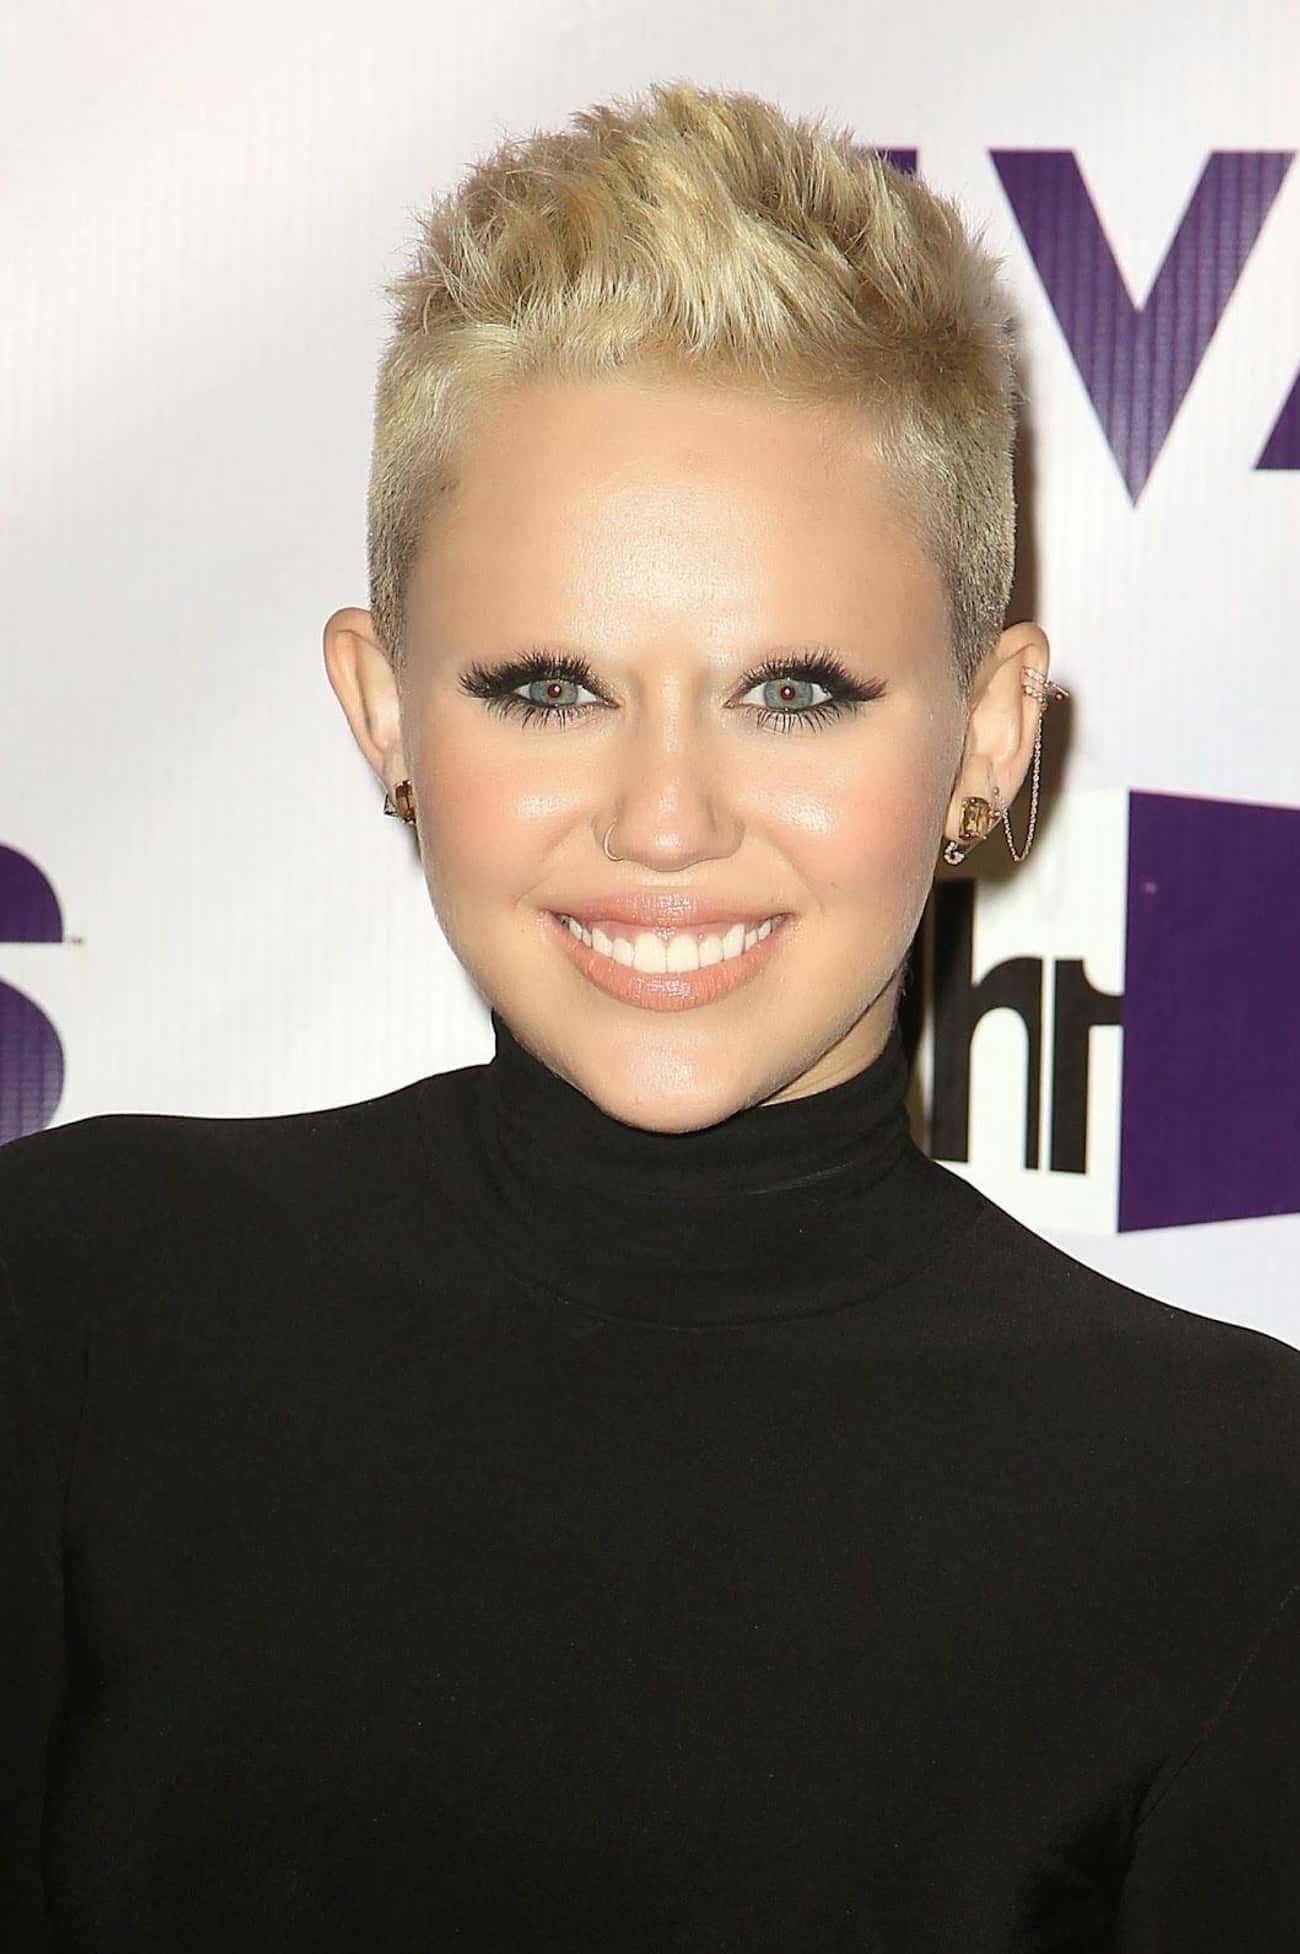 Miley Cyrus is listed (or ranked) 2 on the list 22 Hilarious Pictures of Actors with No Eyebrows